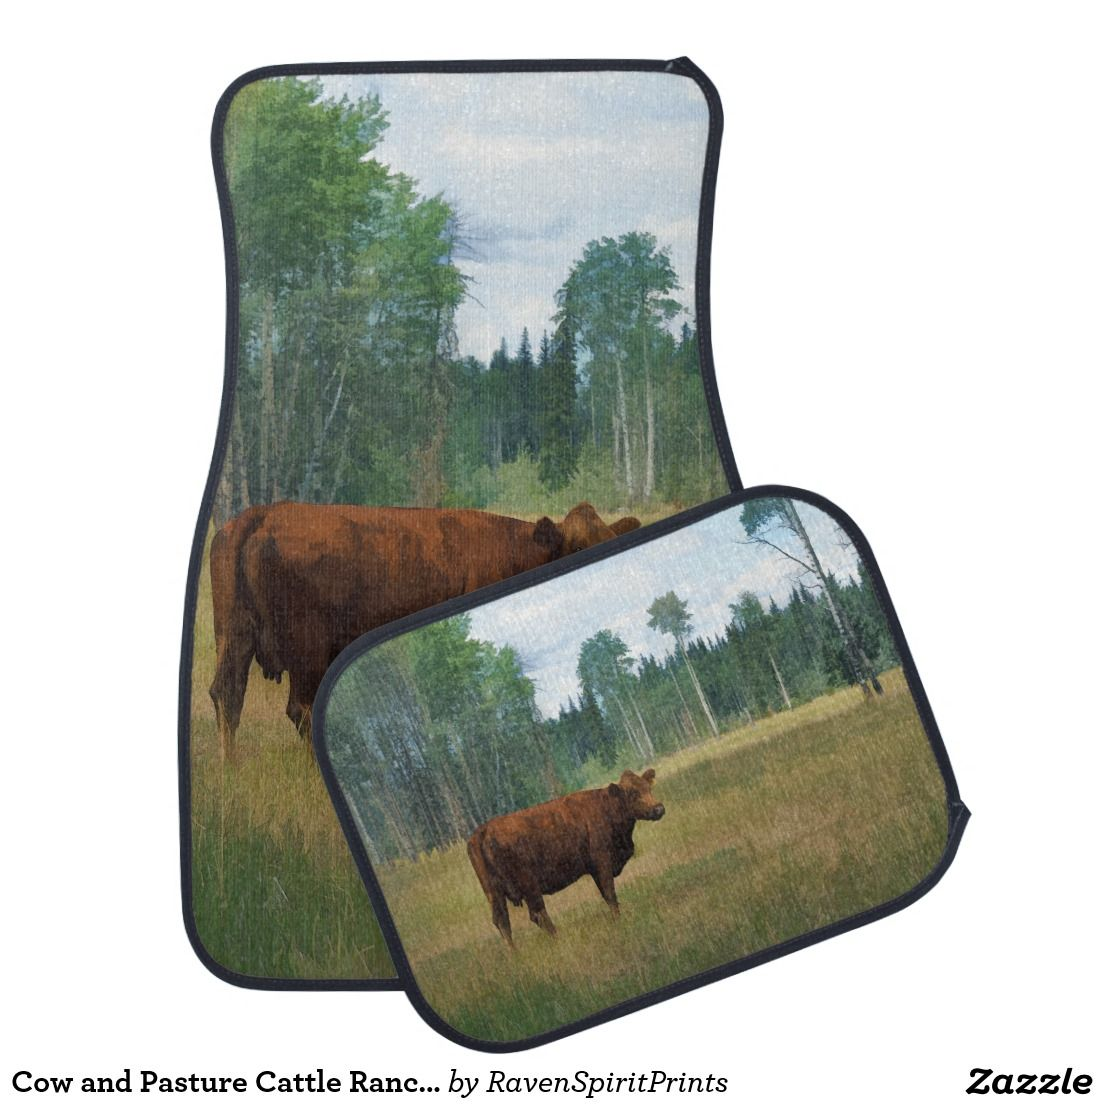 stall mats rubber horse stable photos china icrqzhmhblvo cow productimage